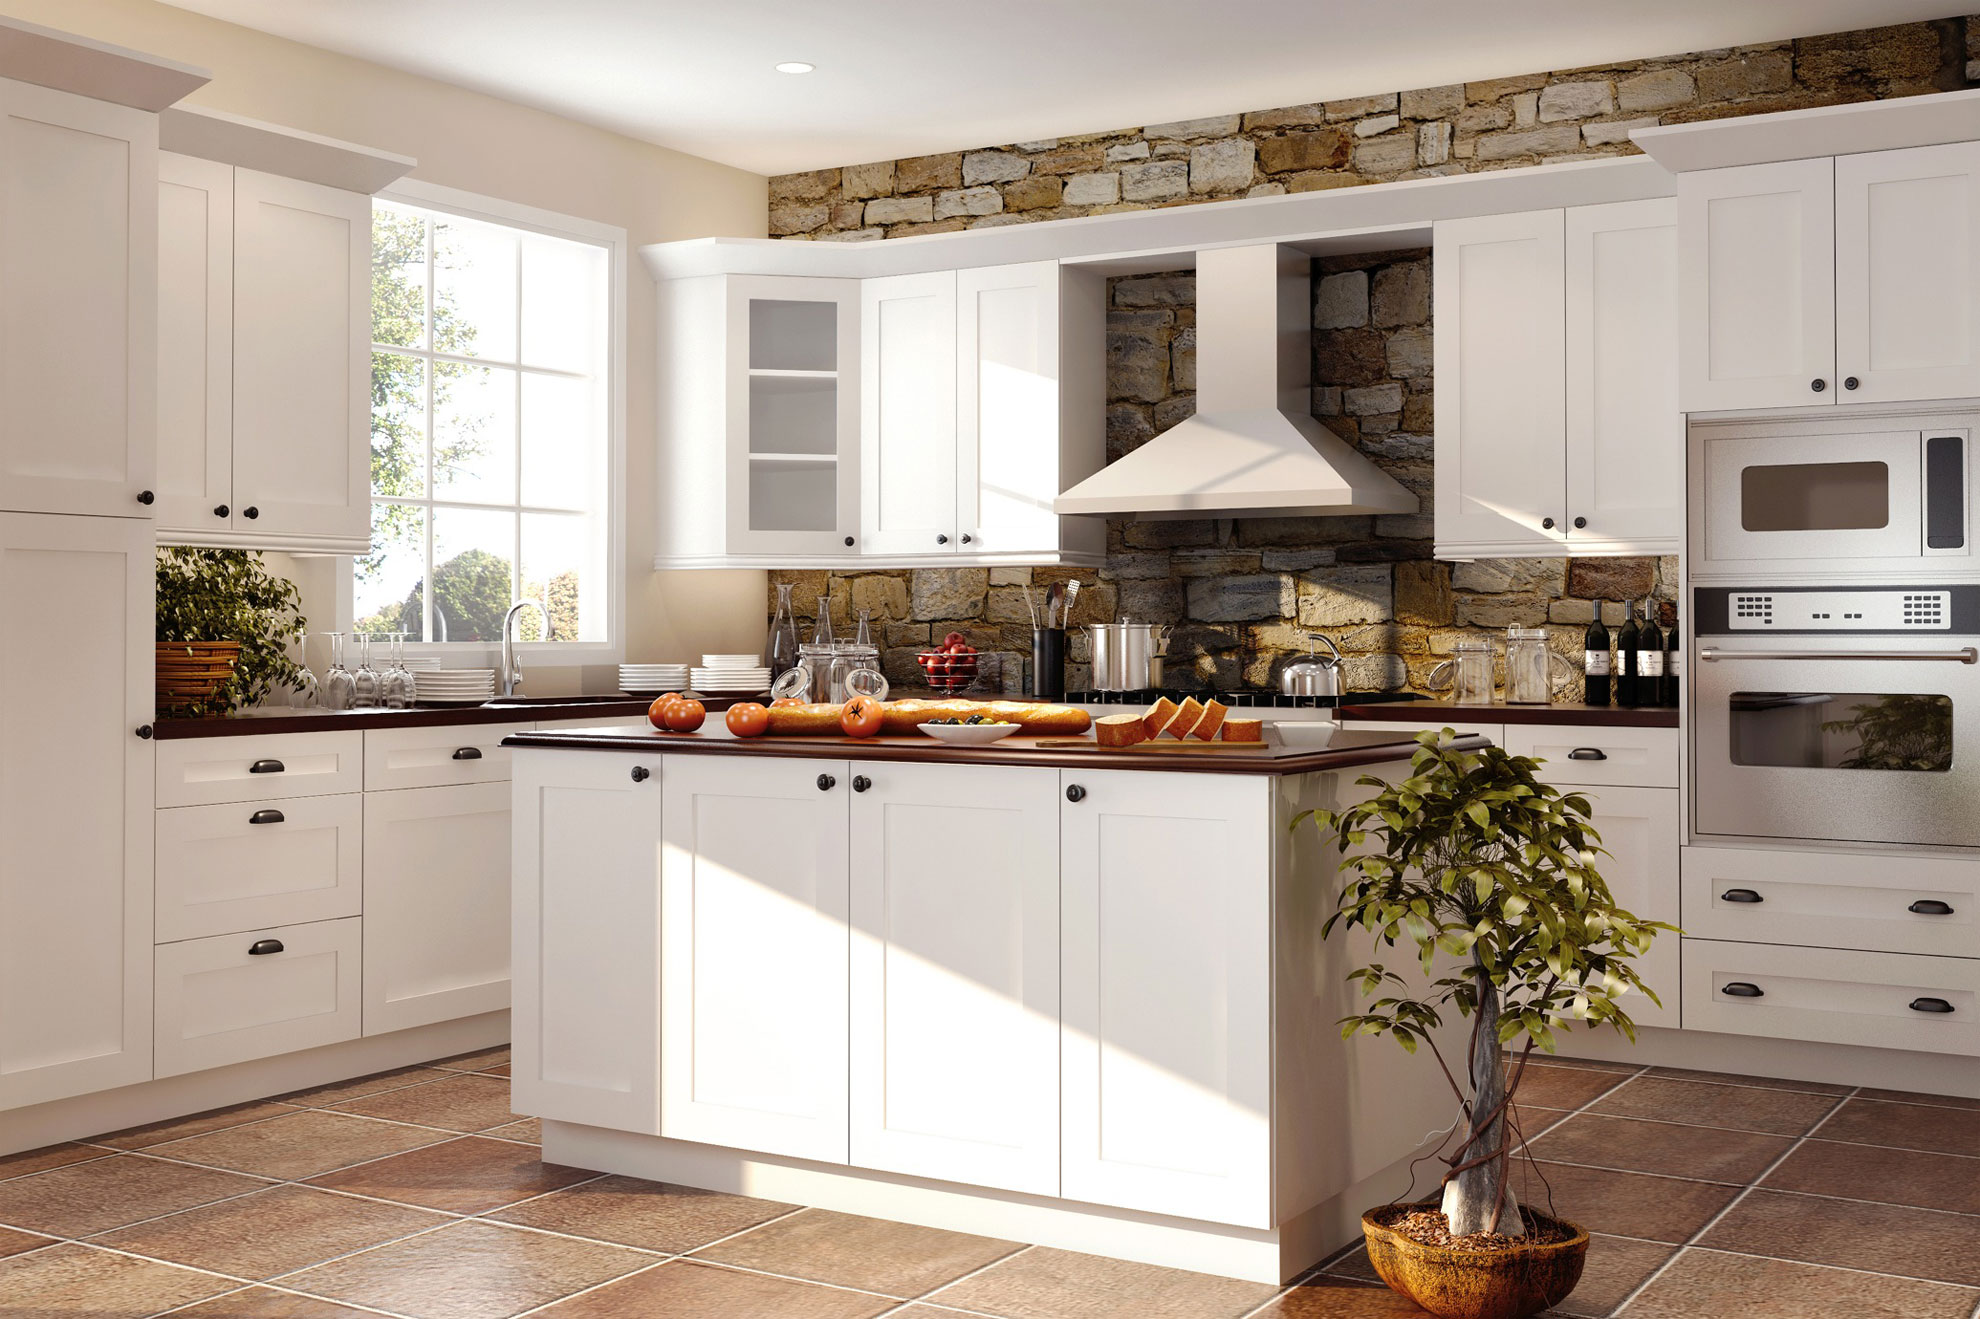 adornus hampton rta kitchen cabinets rta kitchen cabinets Hampton RTA Kitchen Cabinets by Adornus